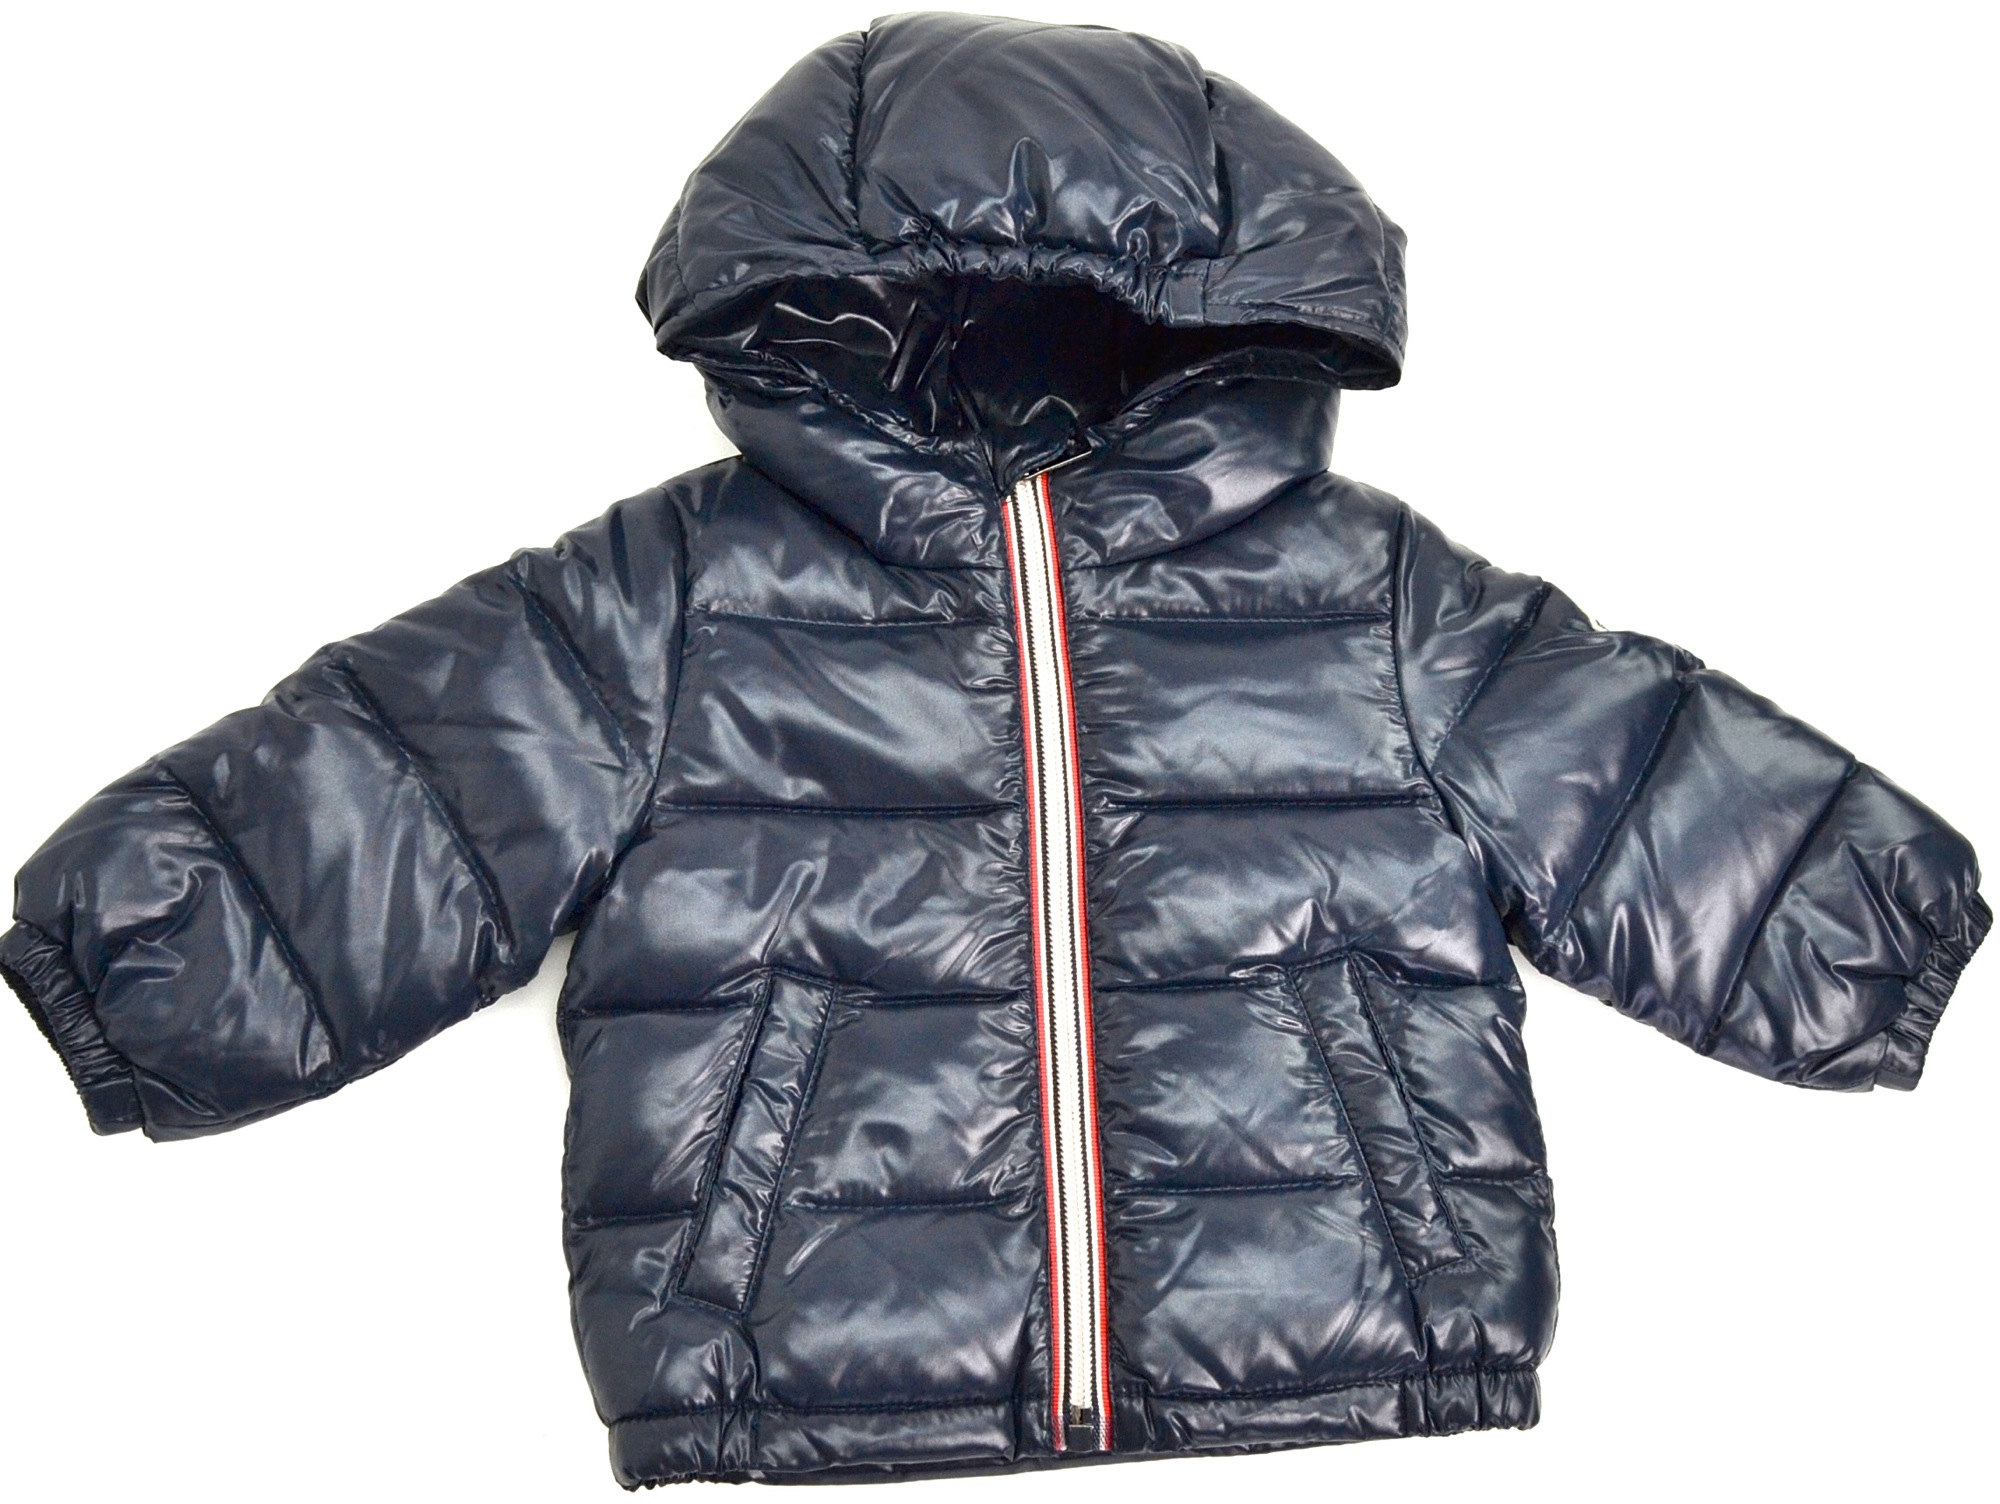 1dca8e284713 MONCLER JUNIOR BOY PUFFER DOWN JACKET WINTER CASUAL FREE TIME CODE ...